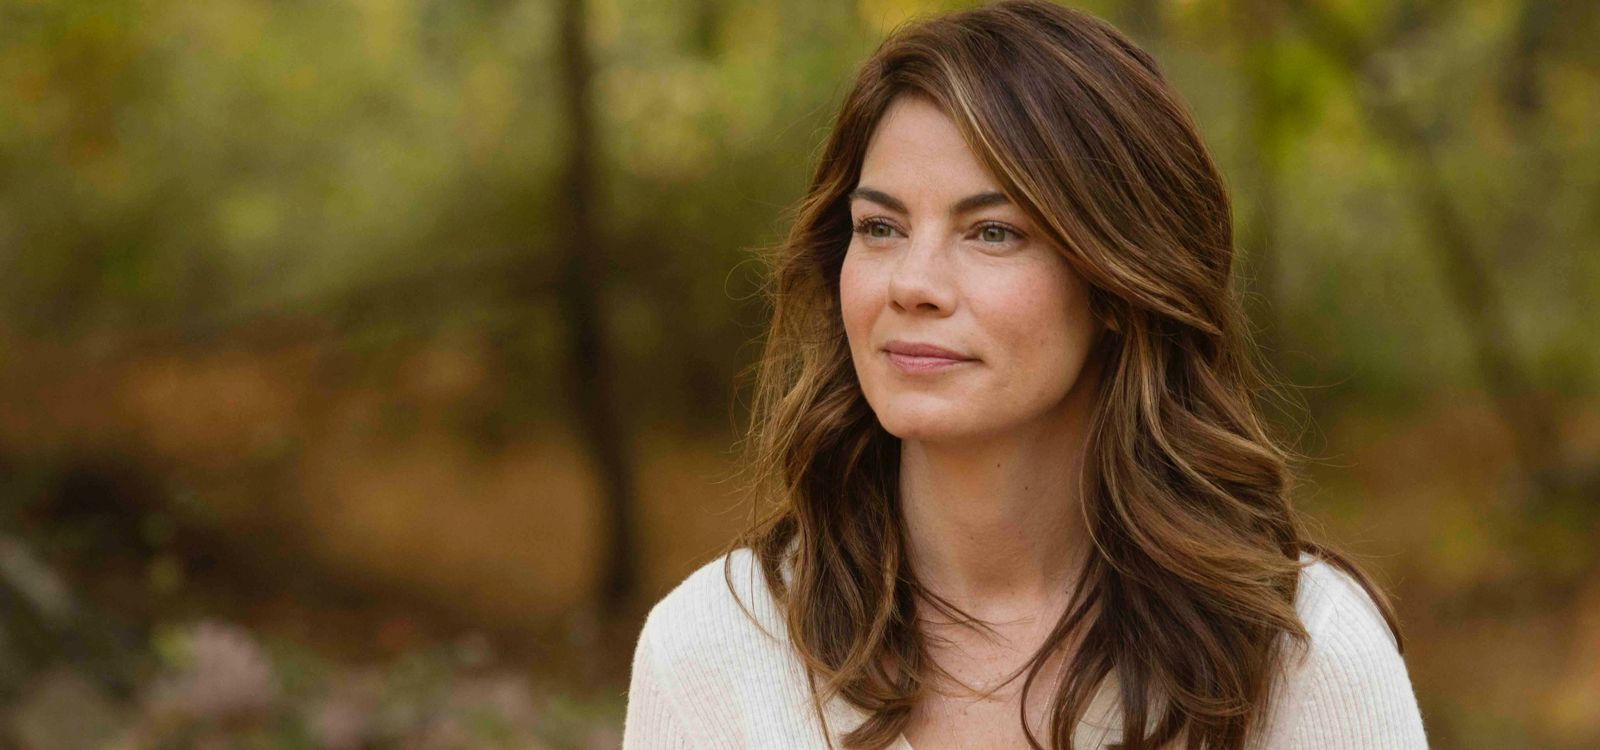 Christina Radish sits down with Michelle Monaghan to talk about the actress' work on Hulu's new drama, The Path, possibilities for Season 2, and more.